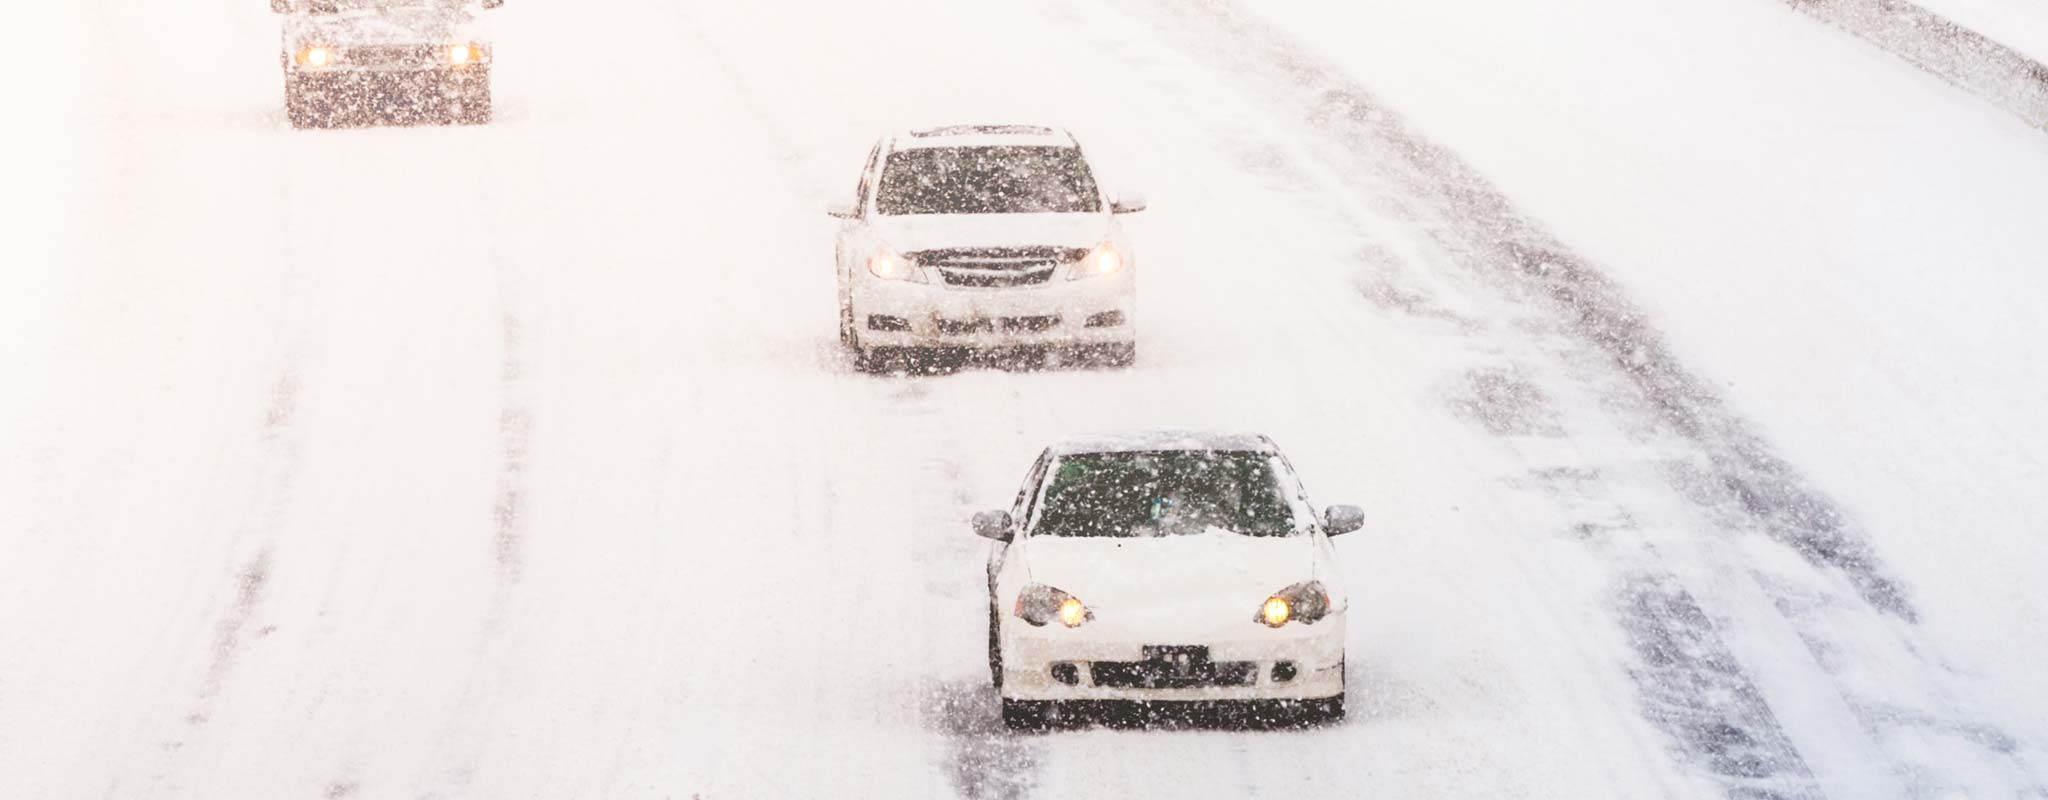 Vehicles on a snowy freeway.